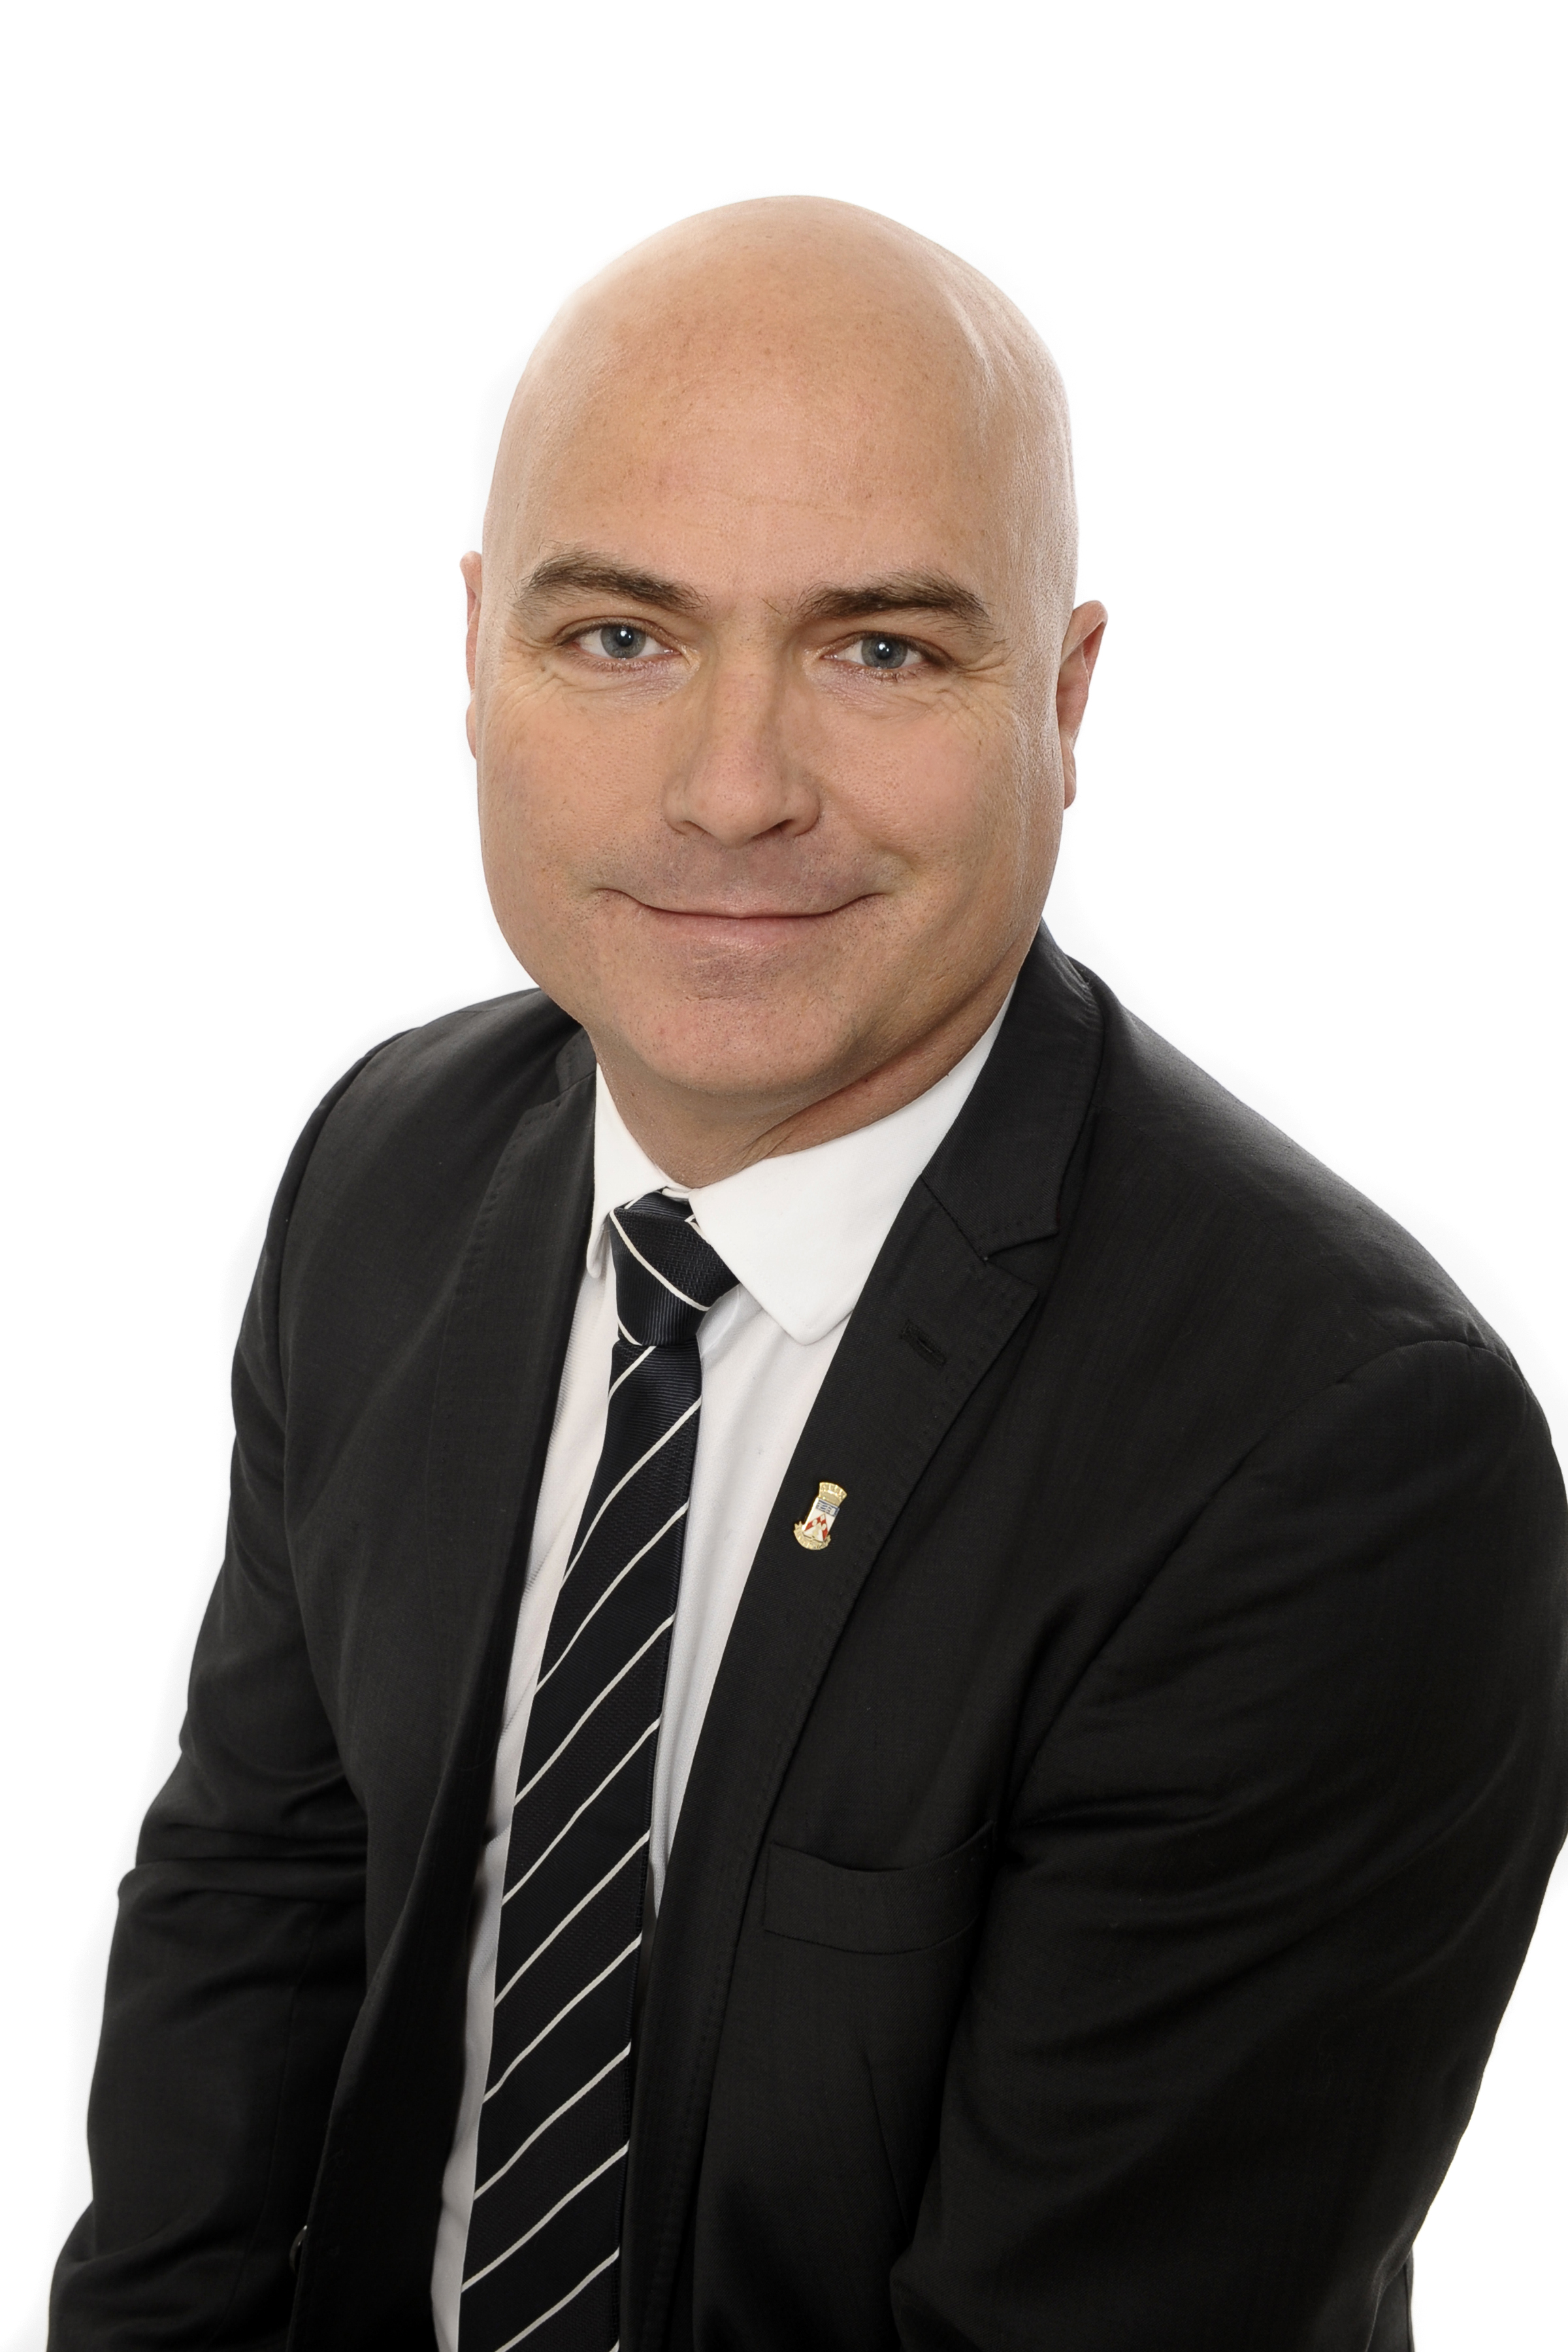 Mike Gendron - Councillor District 6